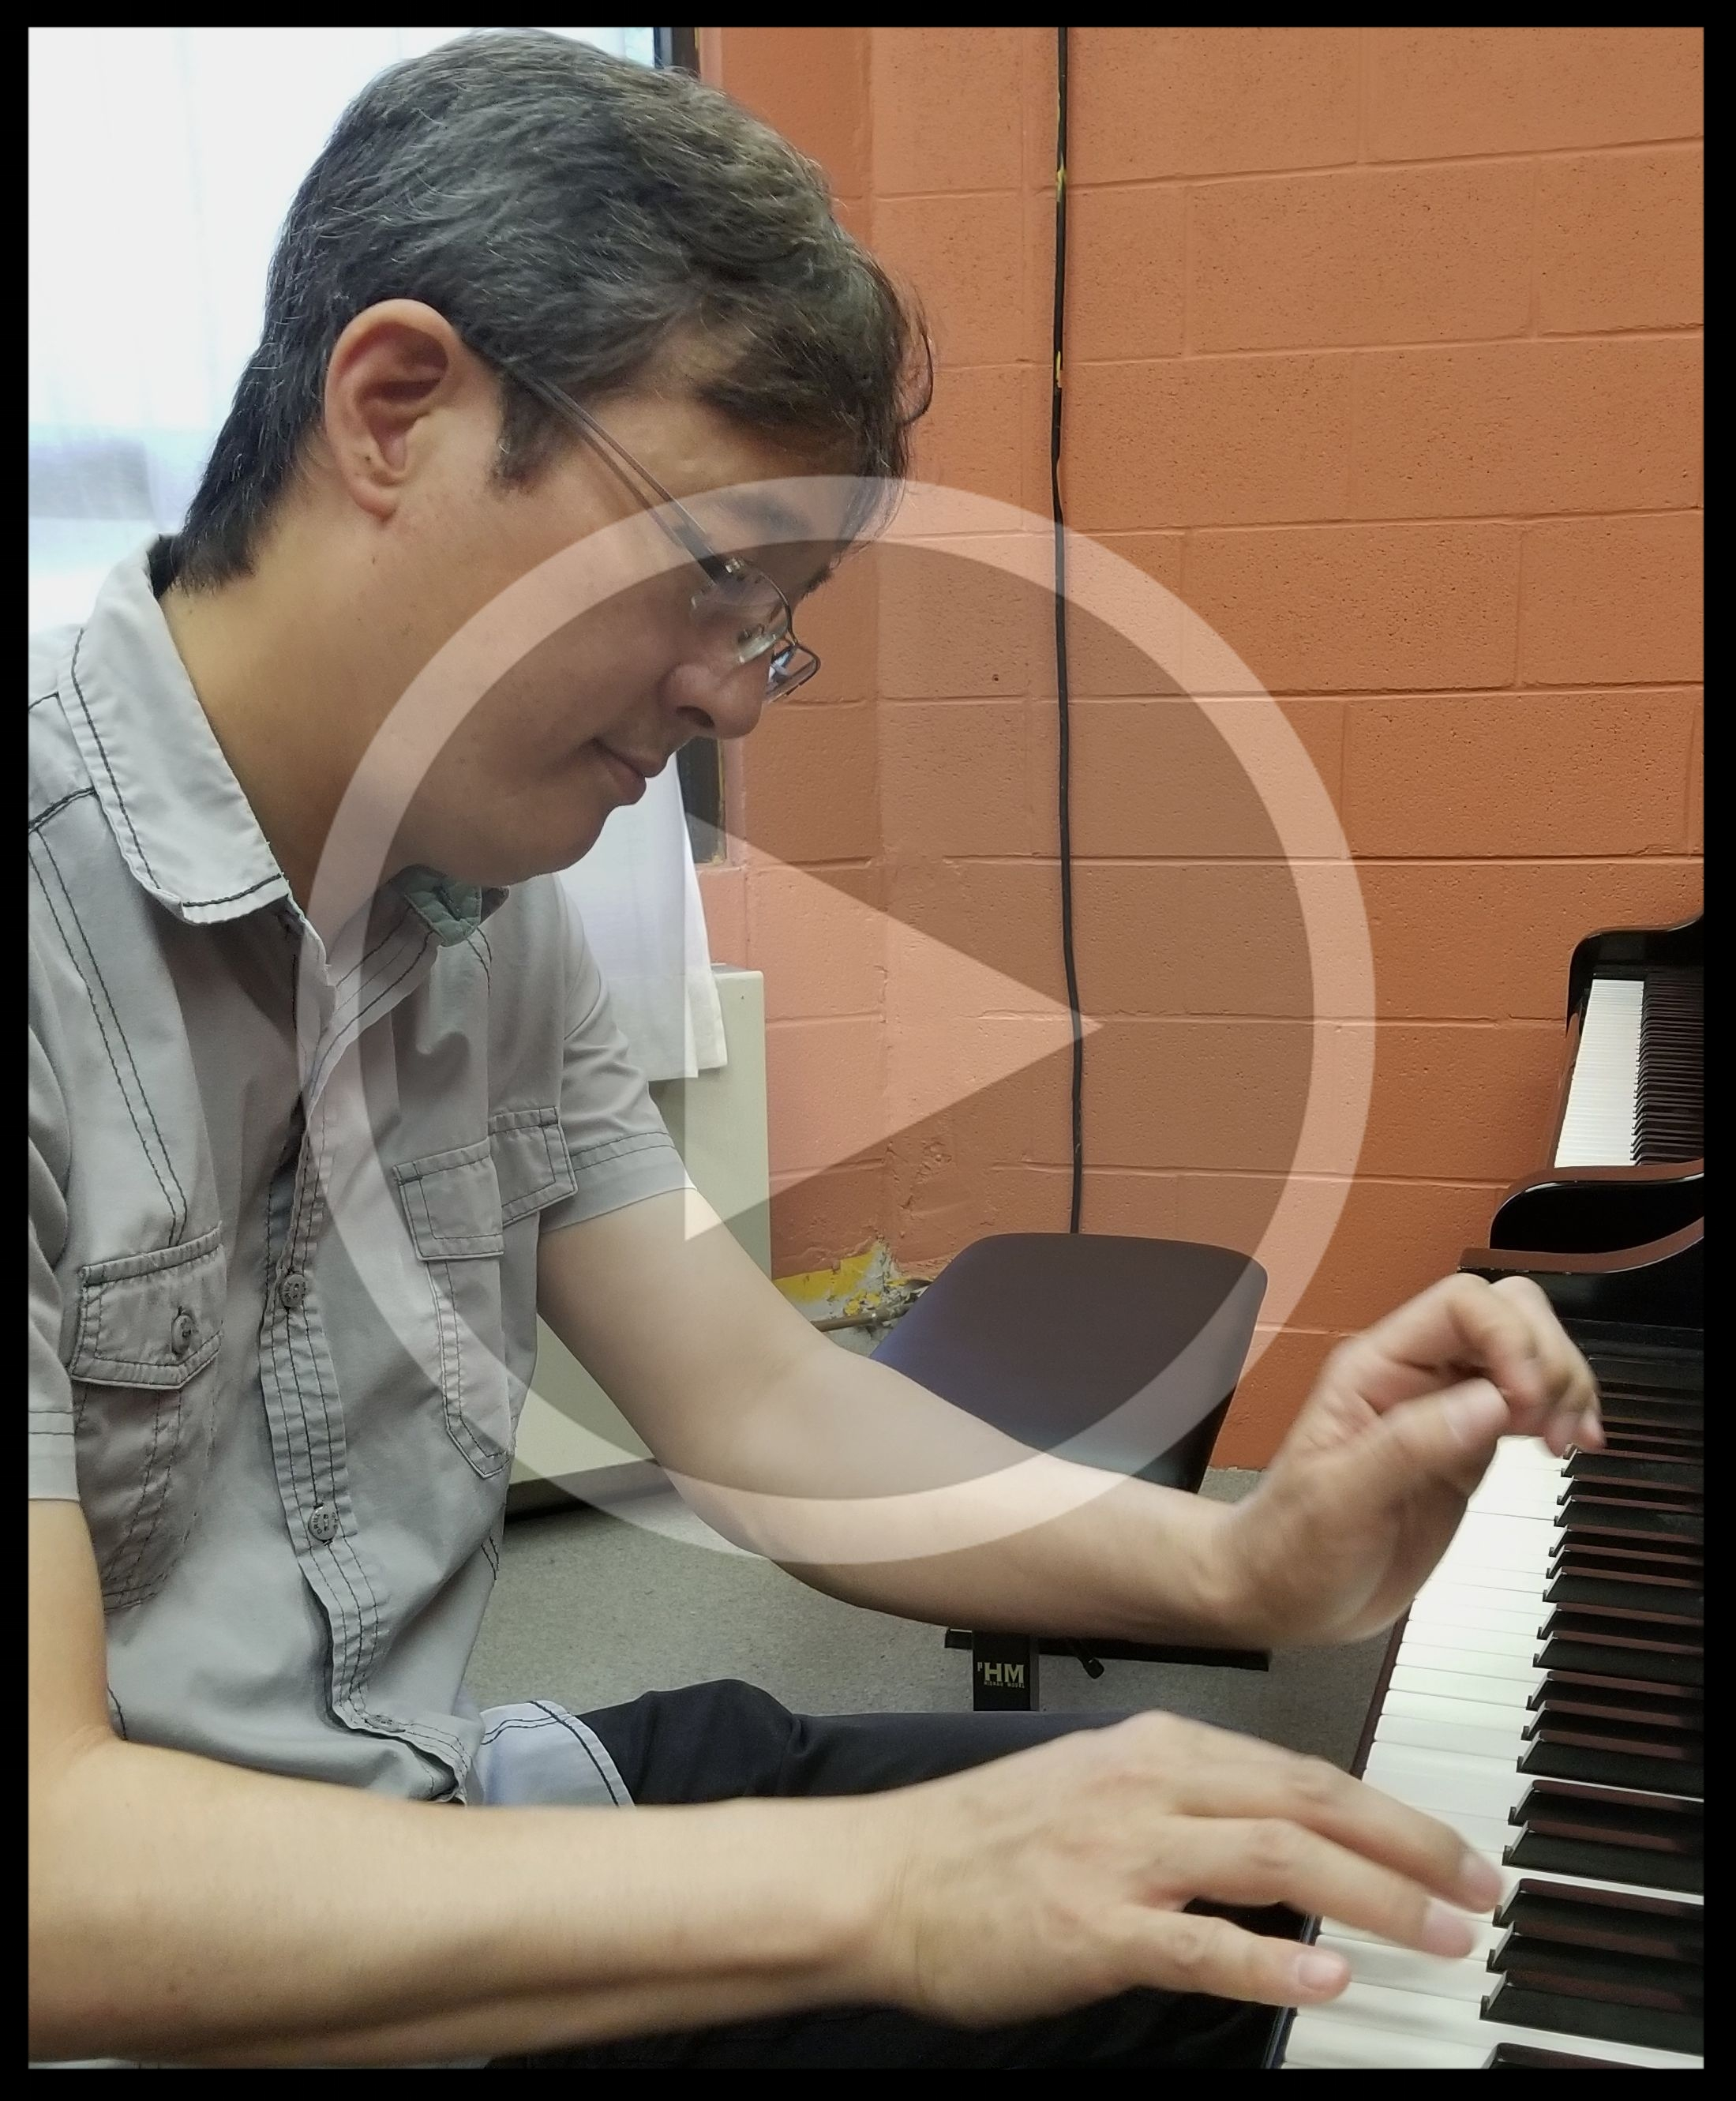 Episode 4: Dr. Naoki Hakutani   Dr. Naoki Hakutani,  Professor of Piano  at UA Little Rock, loves playing and teaching piano to students of all ages. How does he approach a new piece? How does he engage his students? And what passion drives him to persist when he doesn't love practicing piano? You can hear him in a piano trio  here  and performing solo  here .  After listening, you'll find yourself wanting to play piano and revisit old masters. If nothing else, you'll take delight in Beethoven in a whole new way.